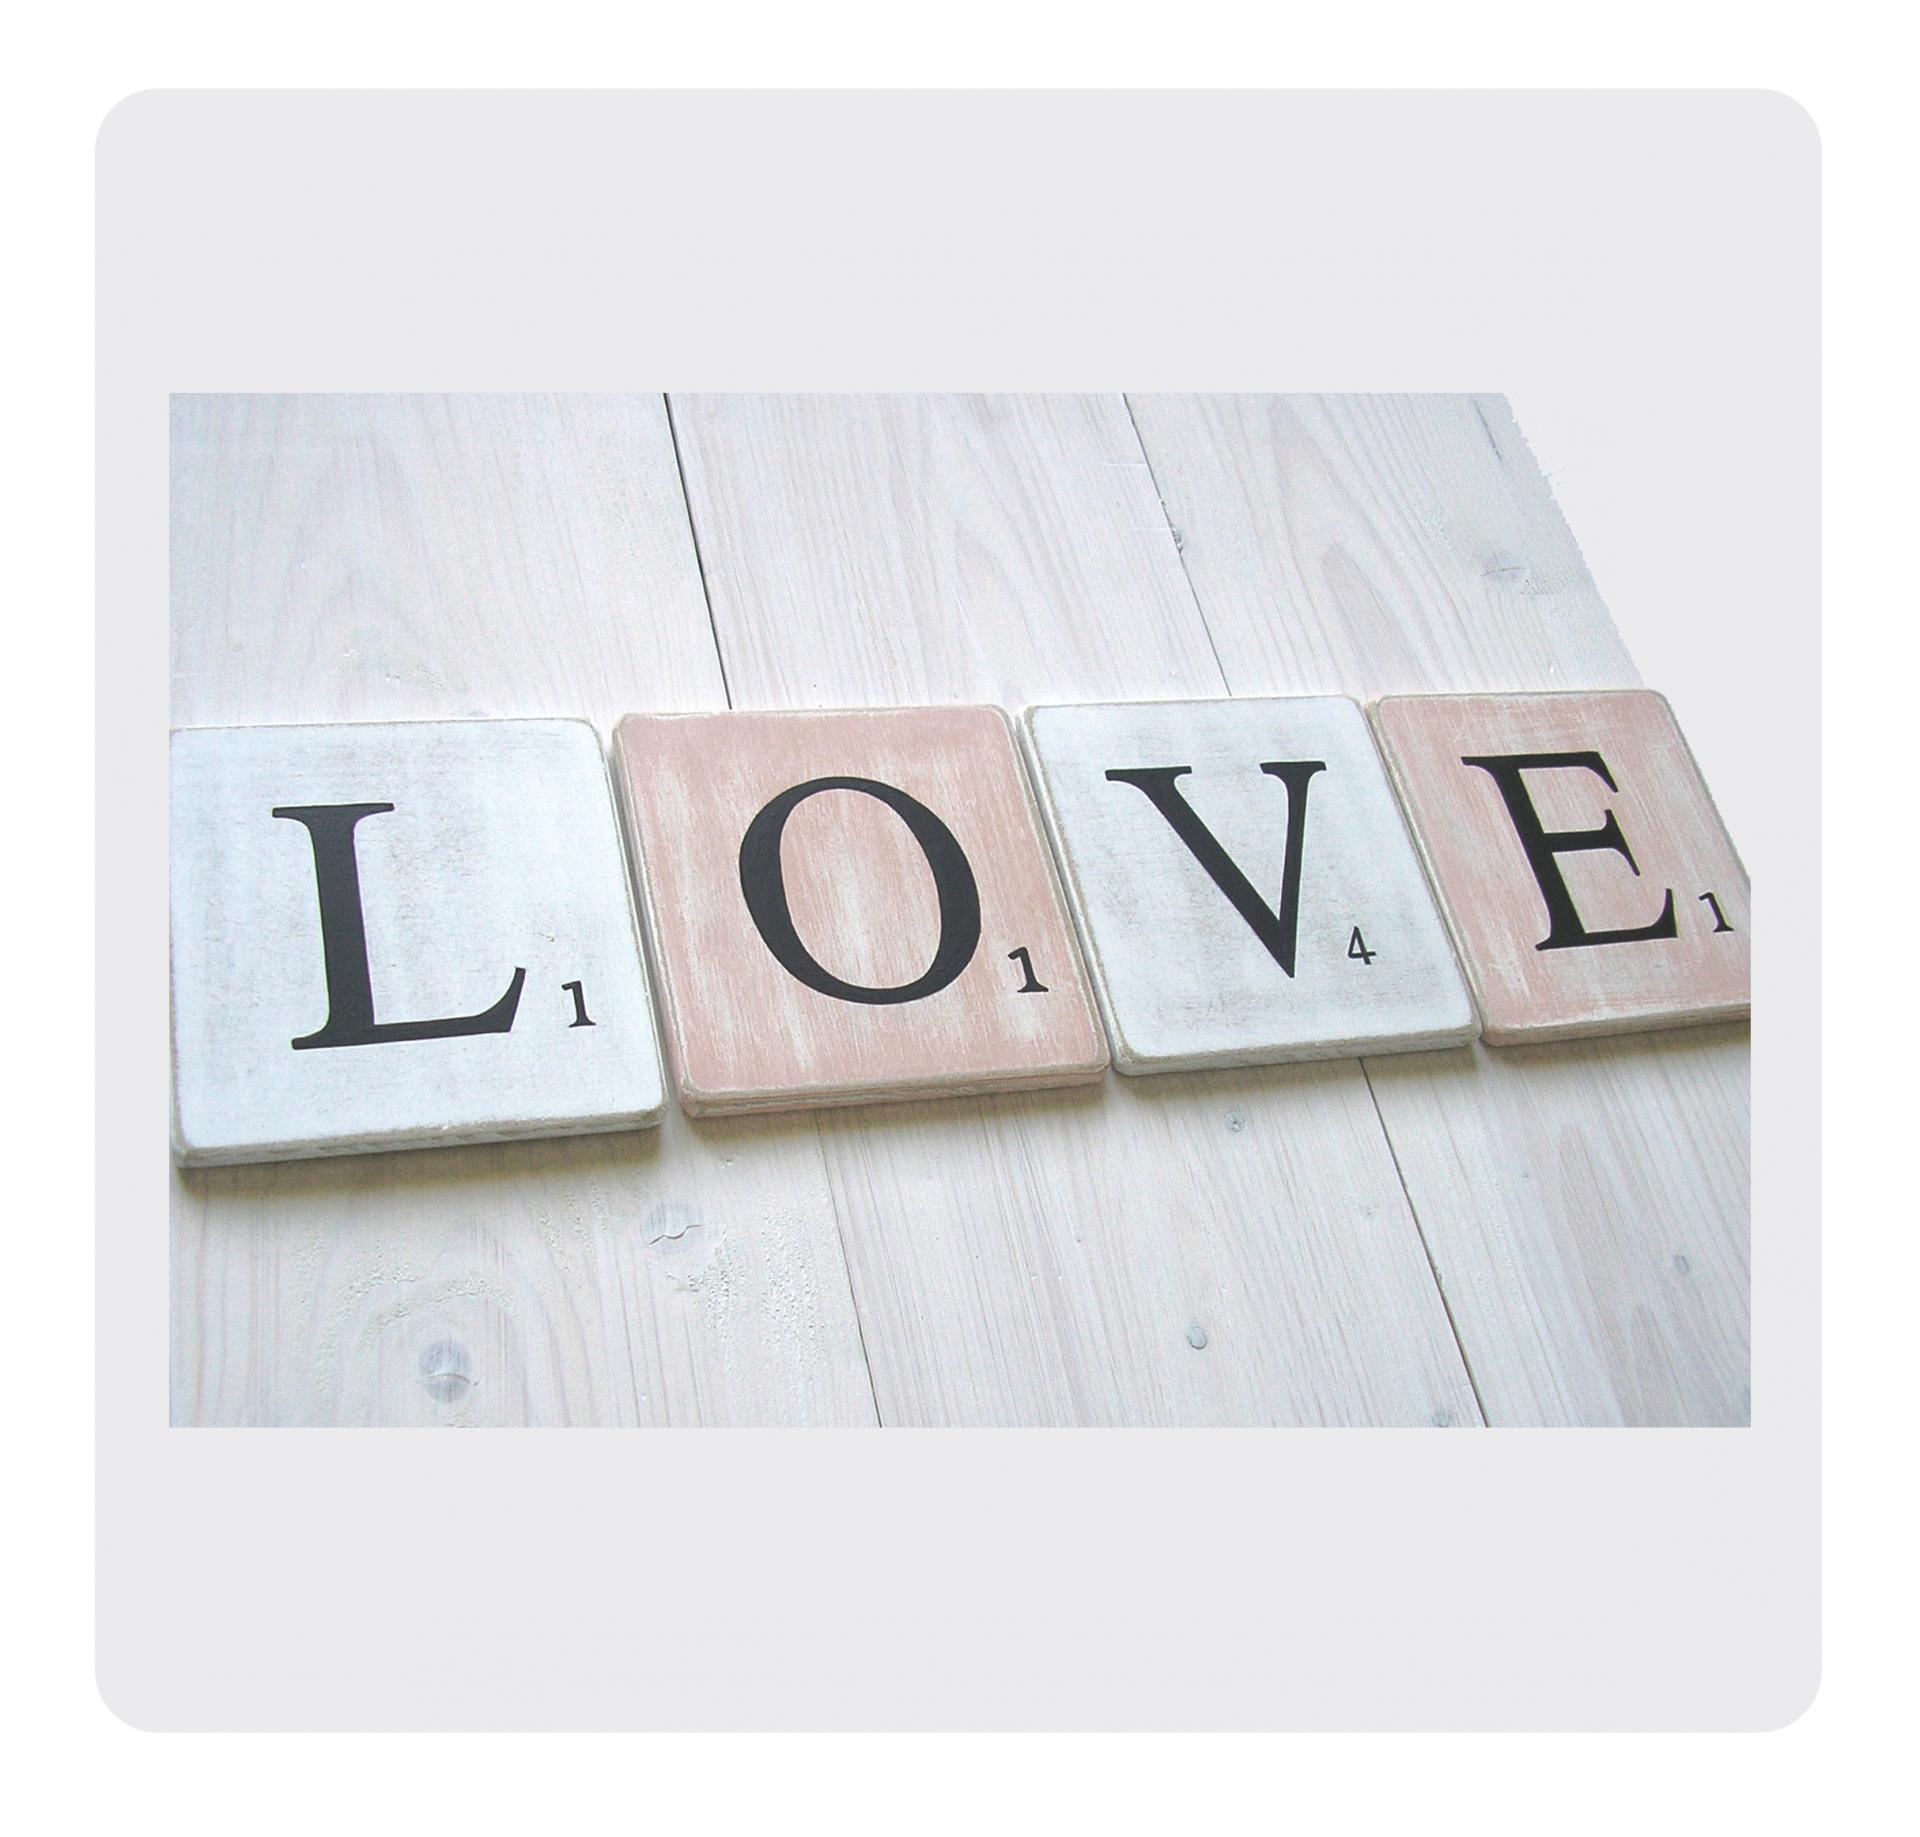 Lettres d corative en bois patin fa on scrabble - Deco lettre scrabble ...